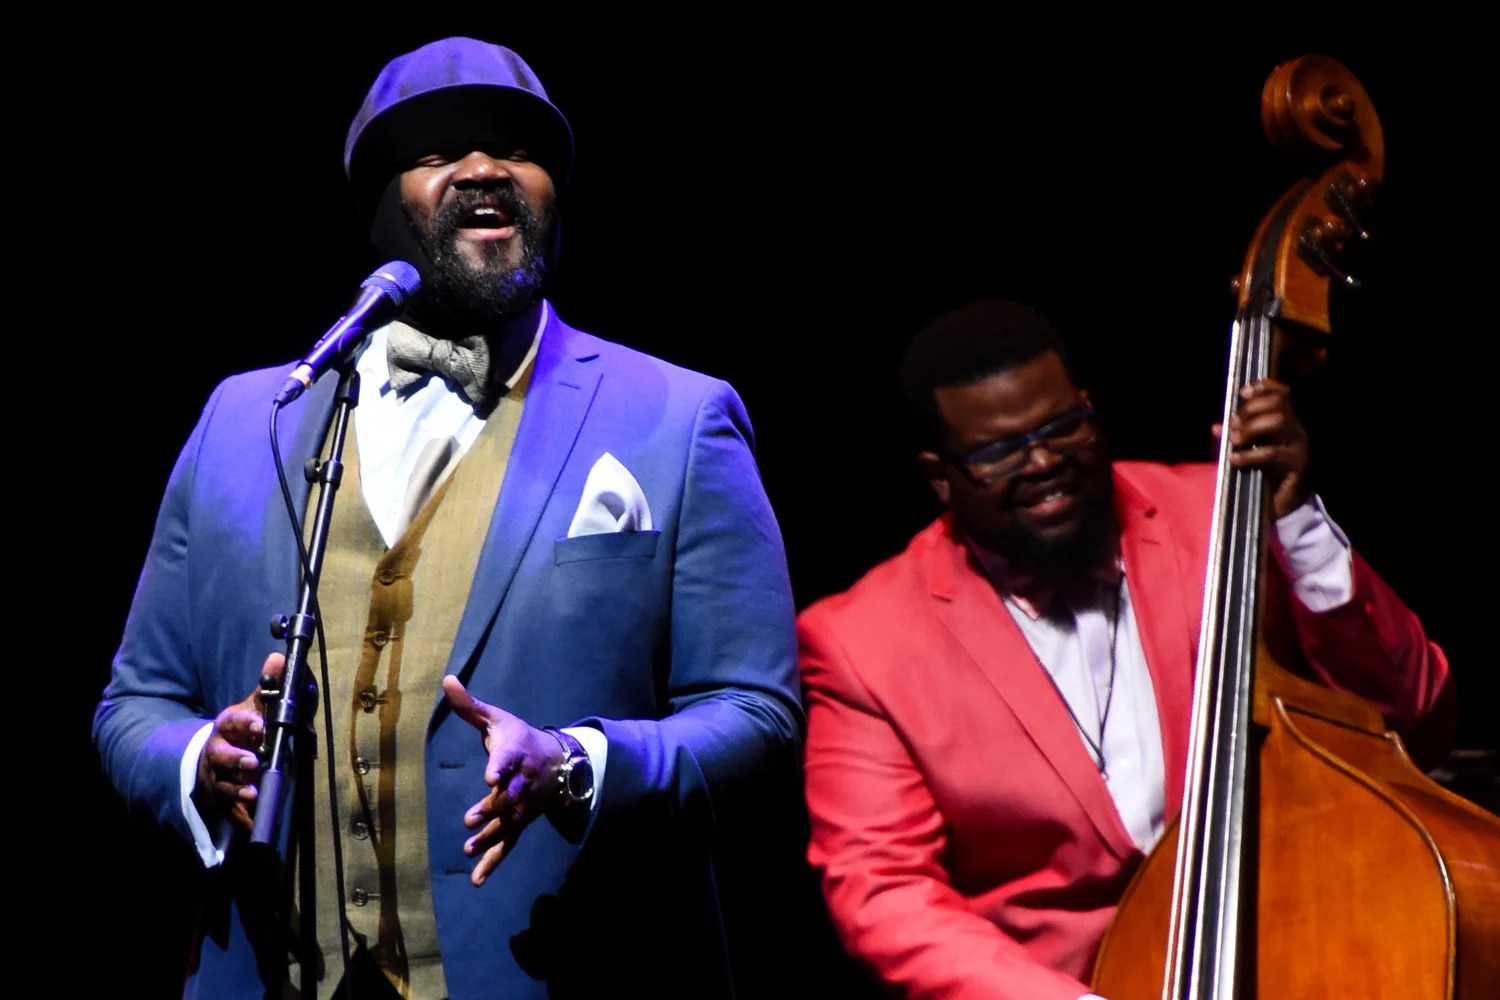 Le Meilleur Gregory Porter Tour Review He Made Hard To Sing Songs Ce Mois Ci